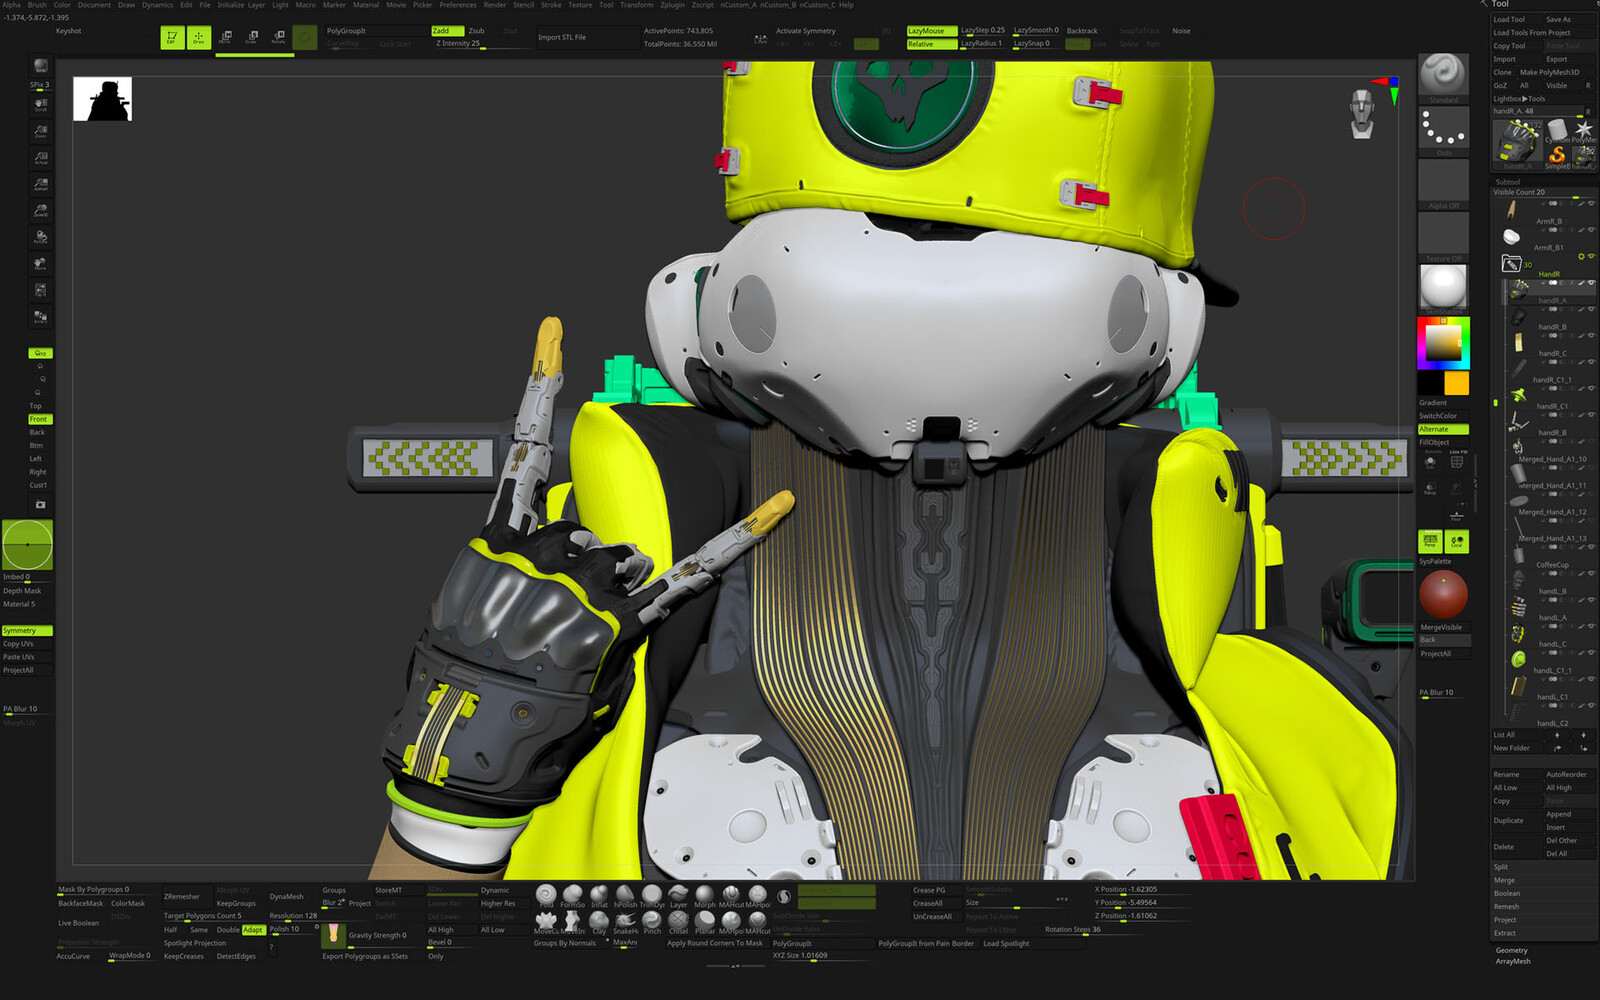 ZB screenshot 1 - some design updates to his hand and details around his outfit